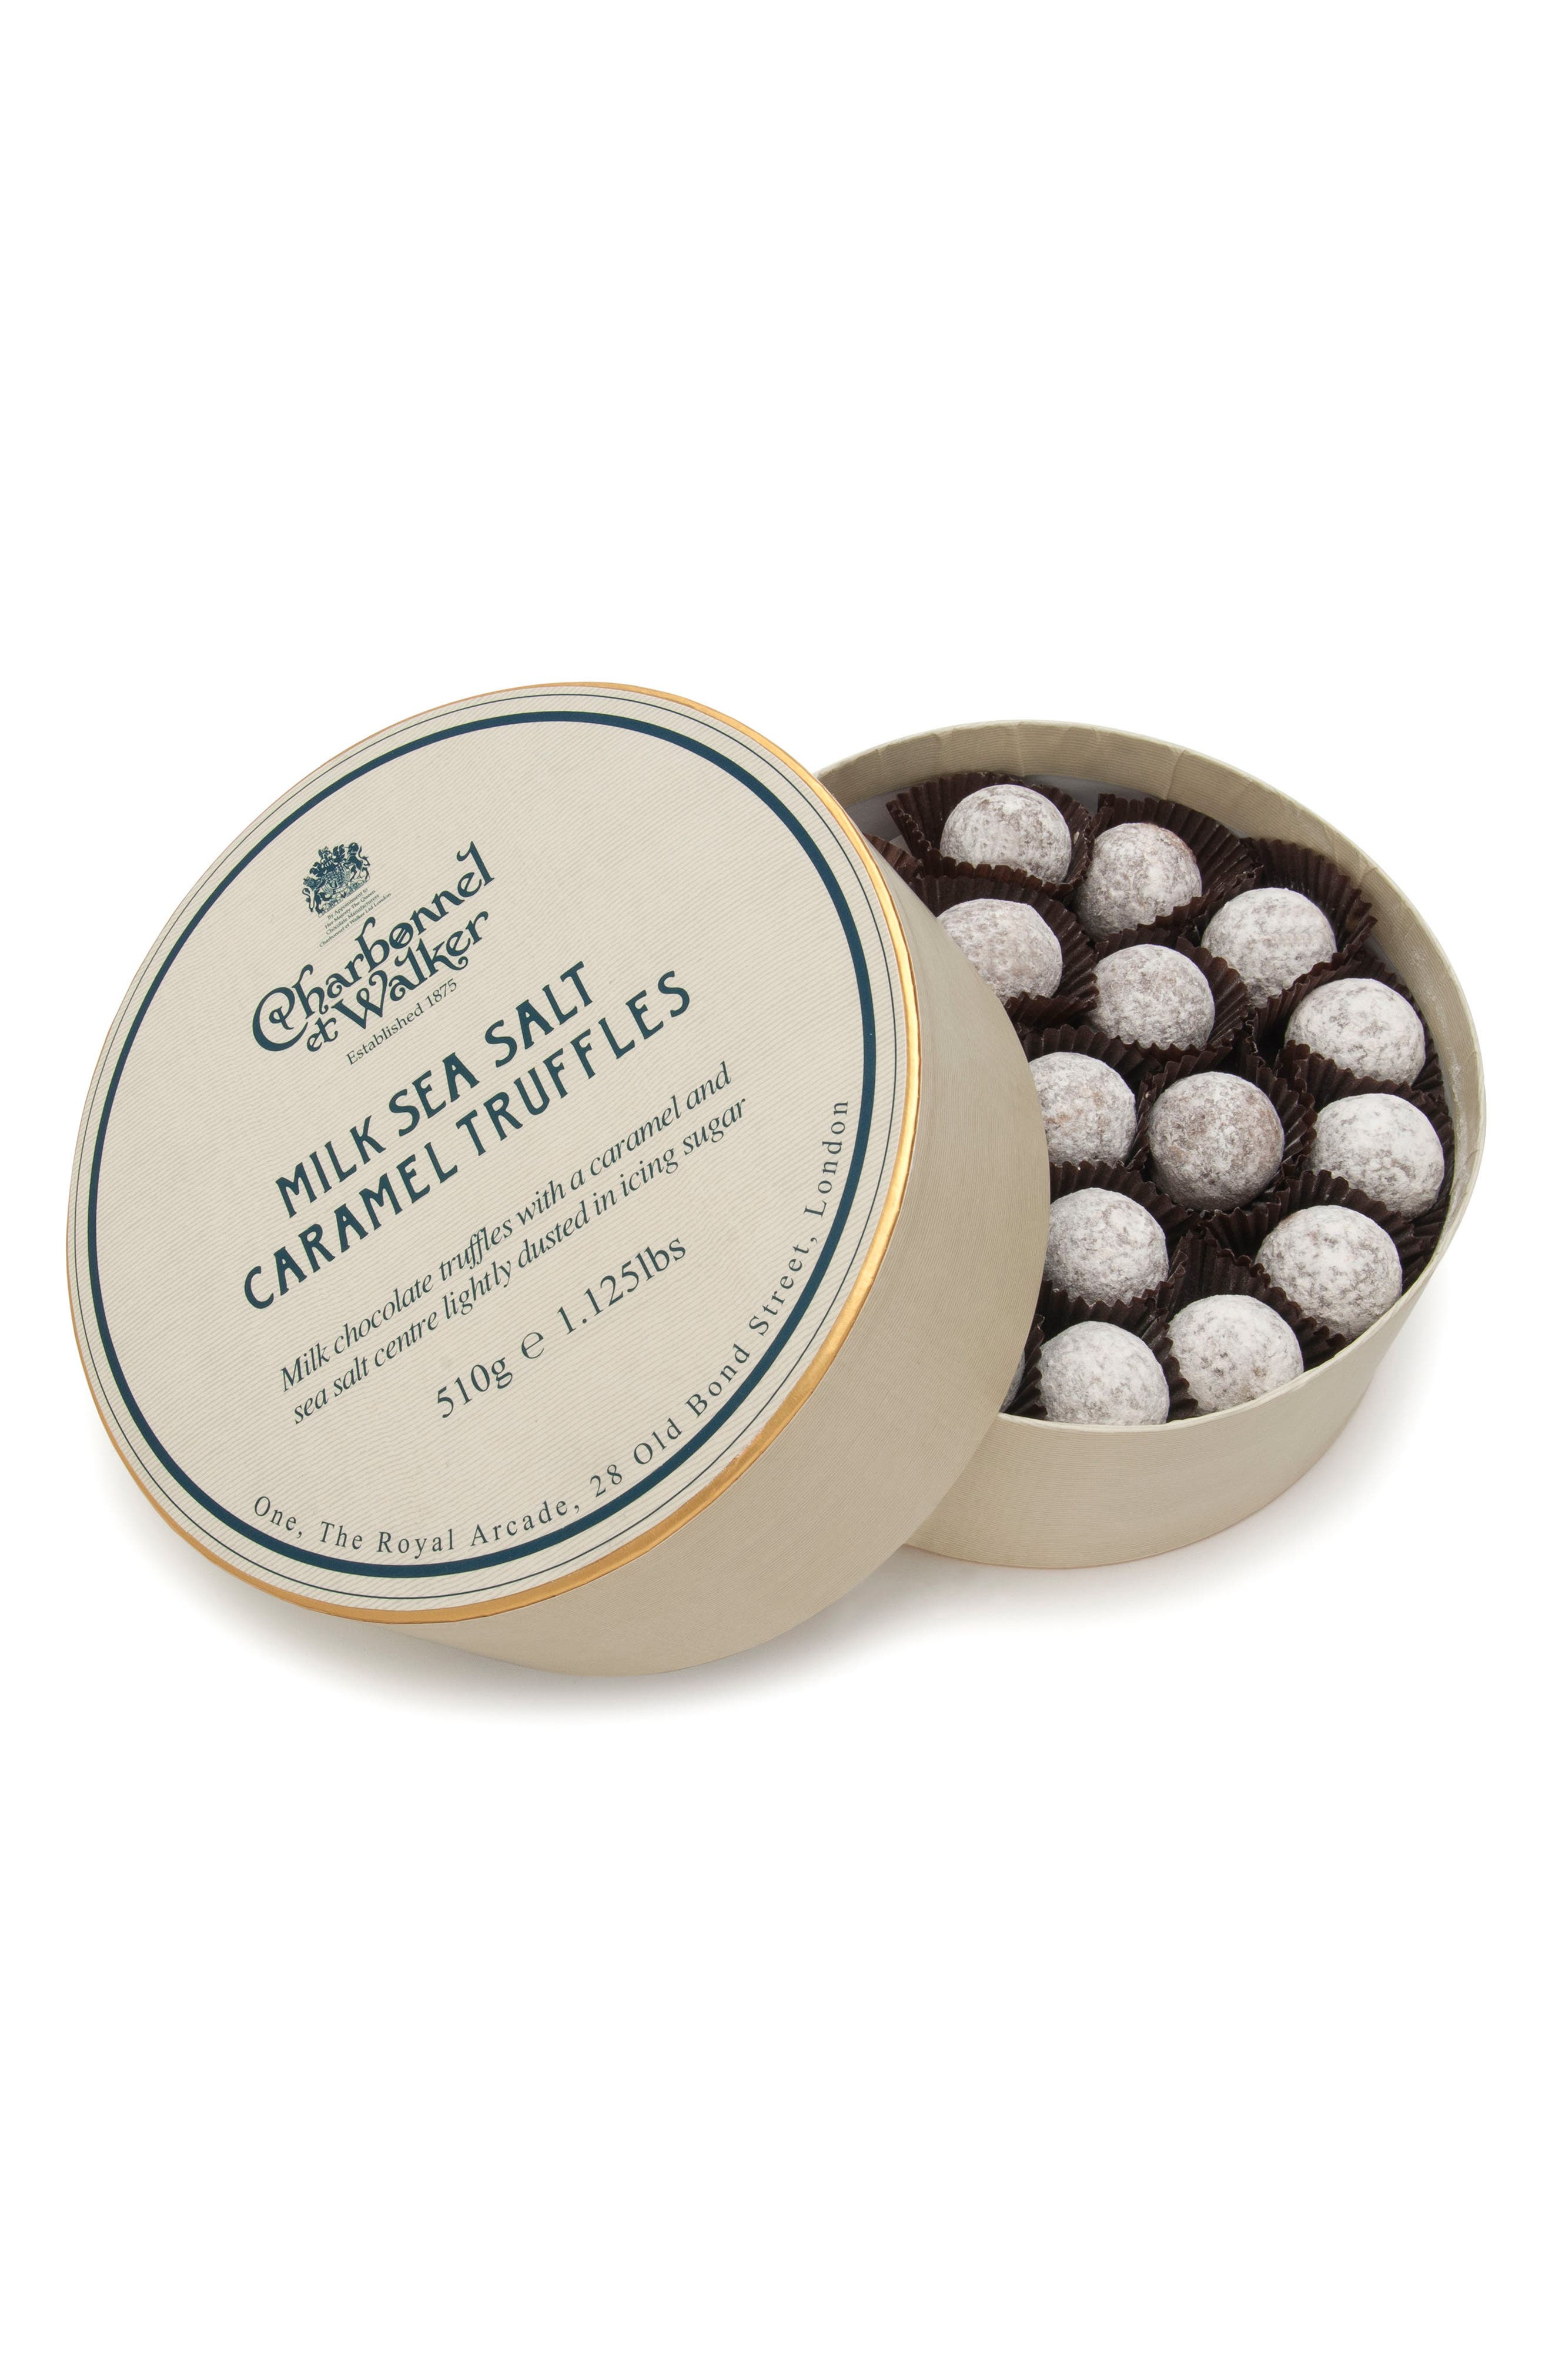 Main Image - Charbonnel et Walker Sea Salt Caramel Milk Chocolate Truffles in Double Layer Gift Box